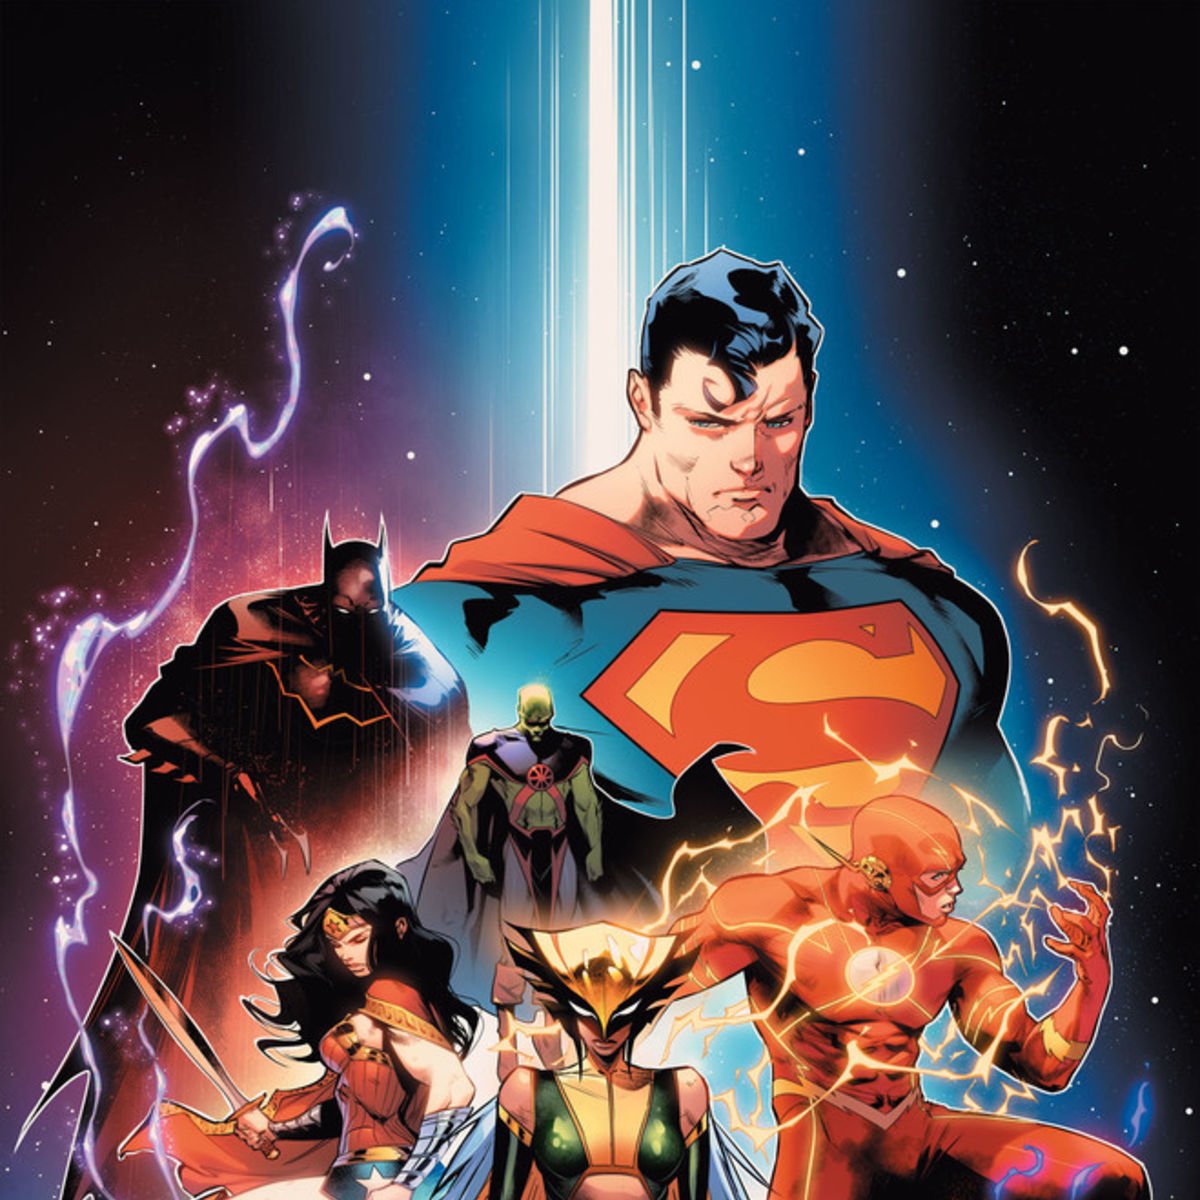 DC Comics is relaunching Justice League   SYFY WIRE